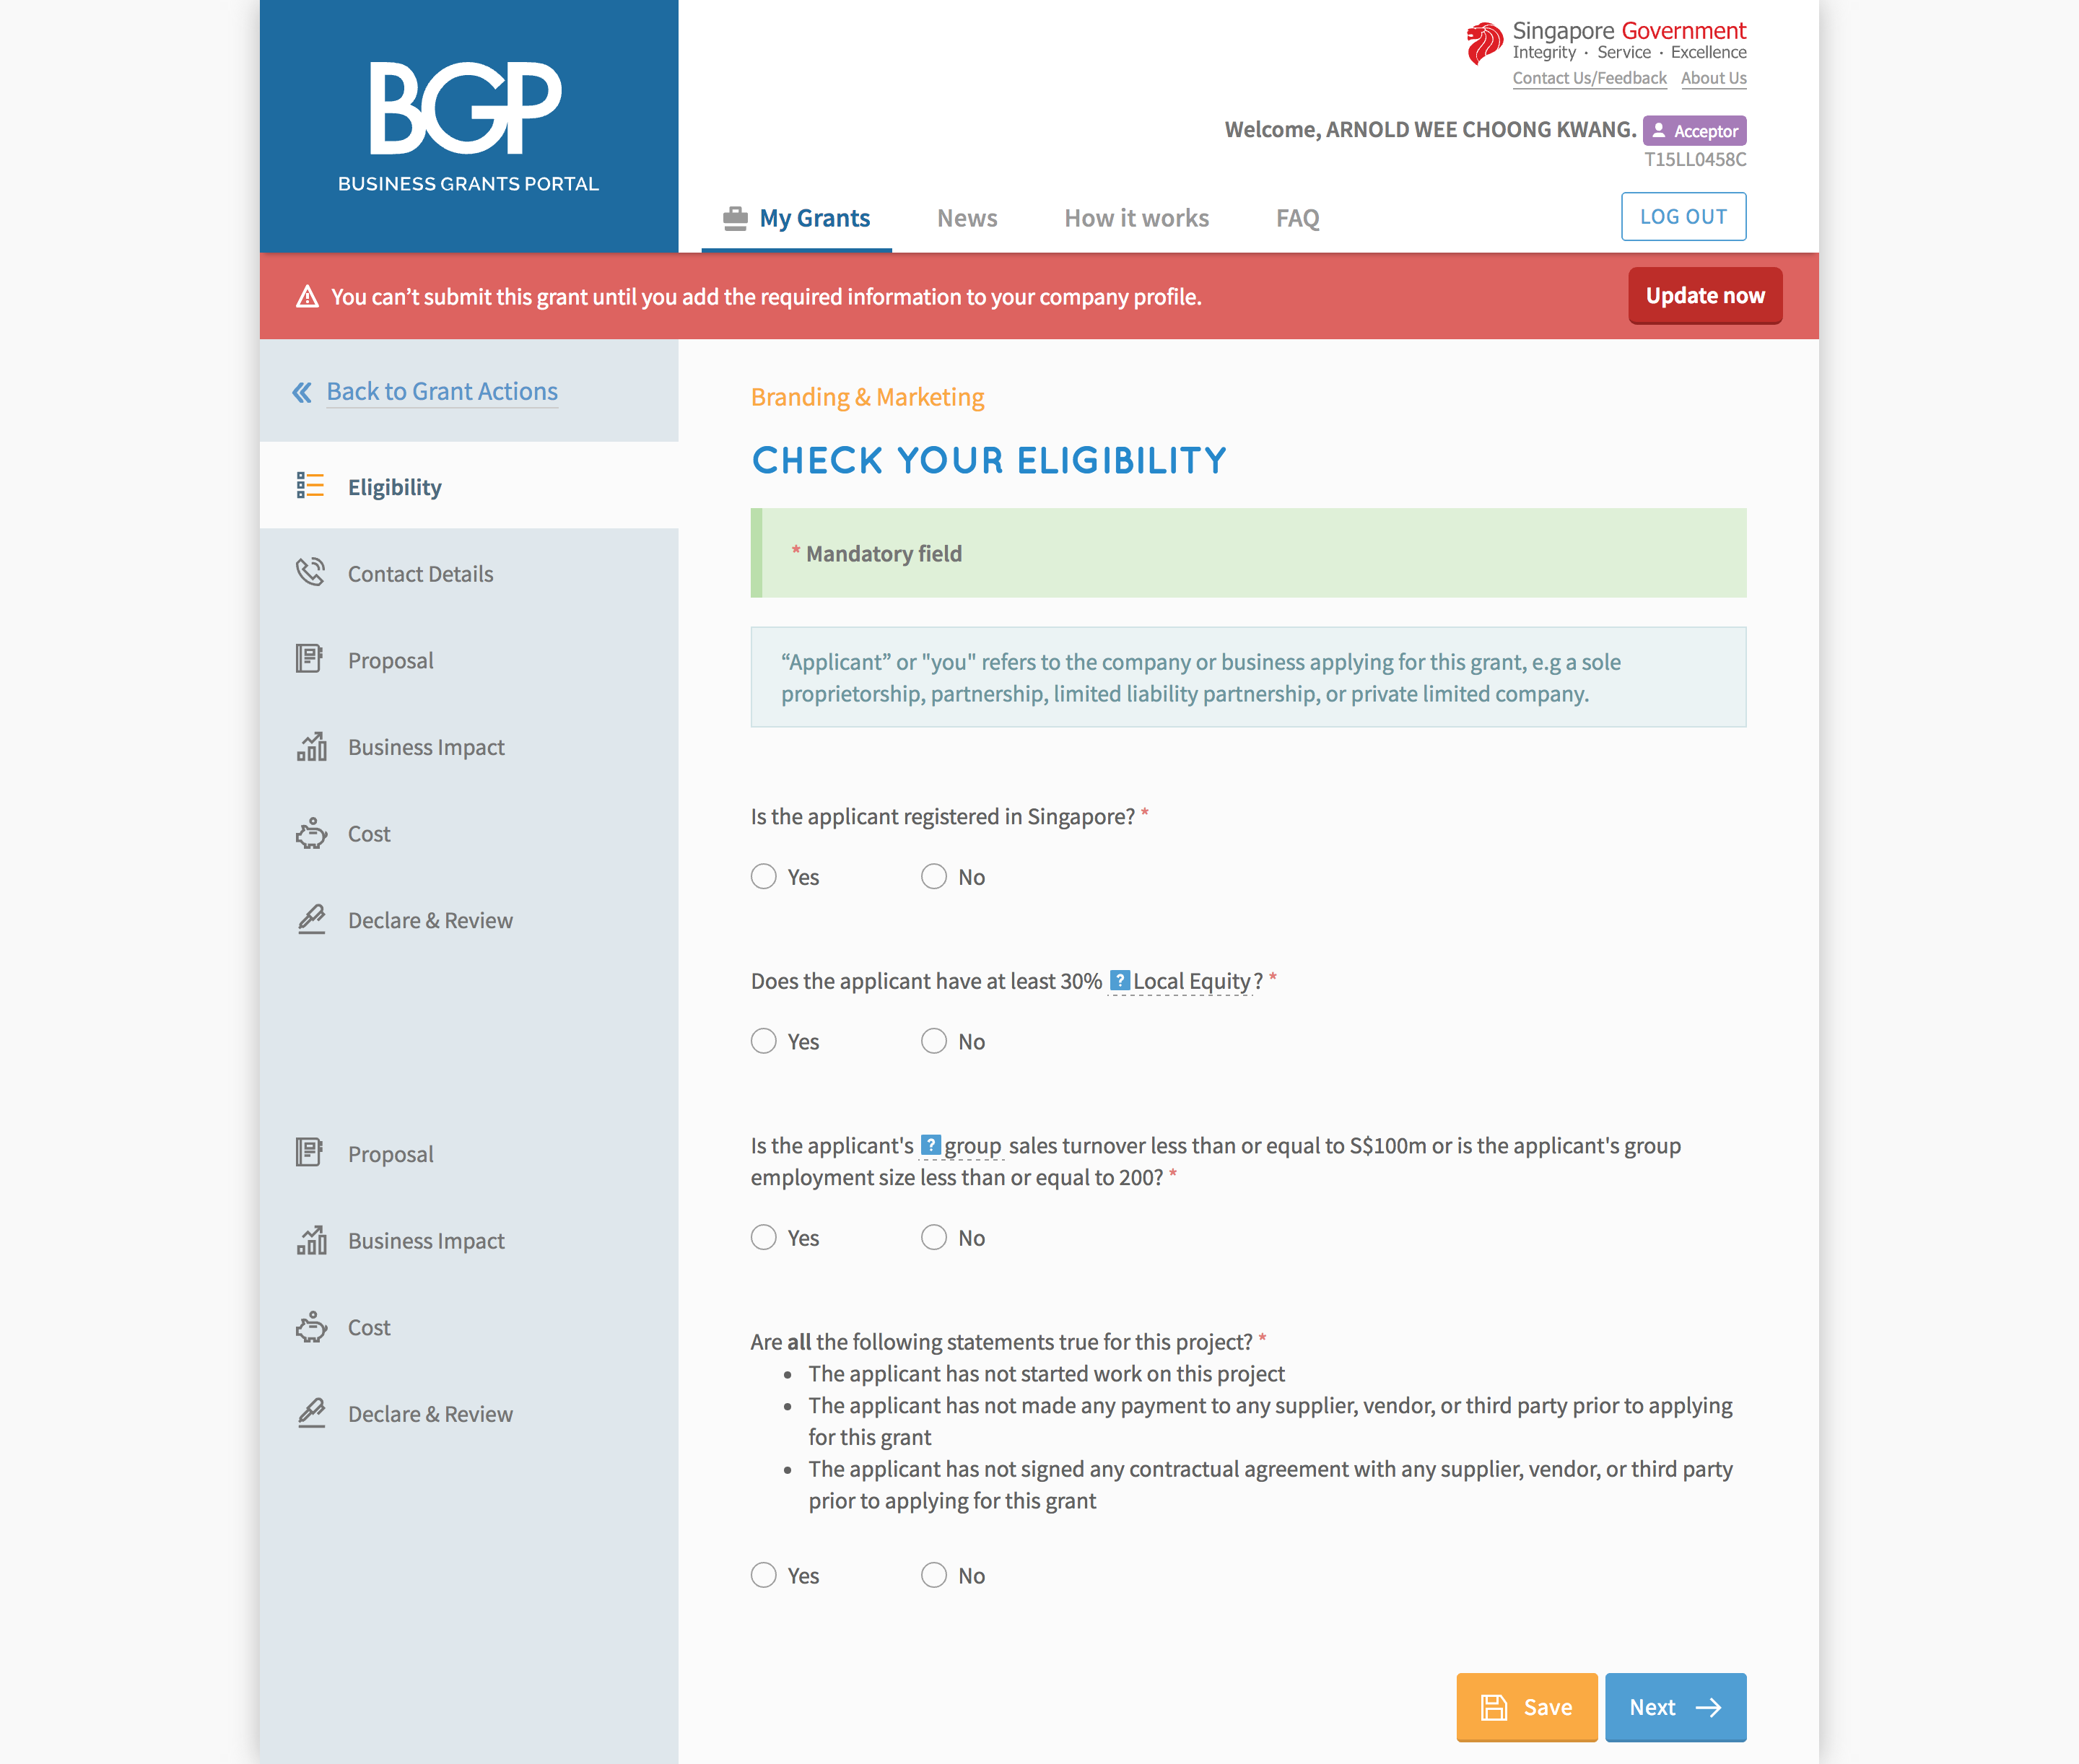 spring-cdg-business-grants-portal-2